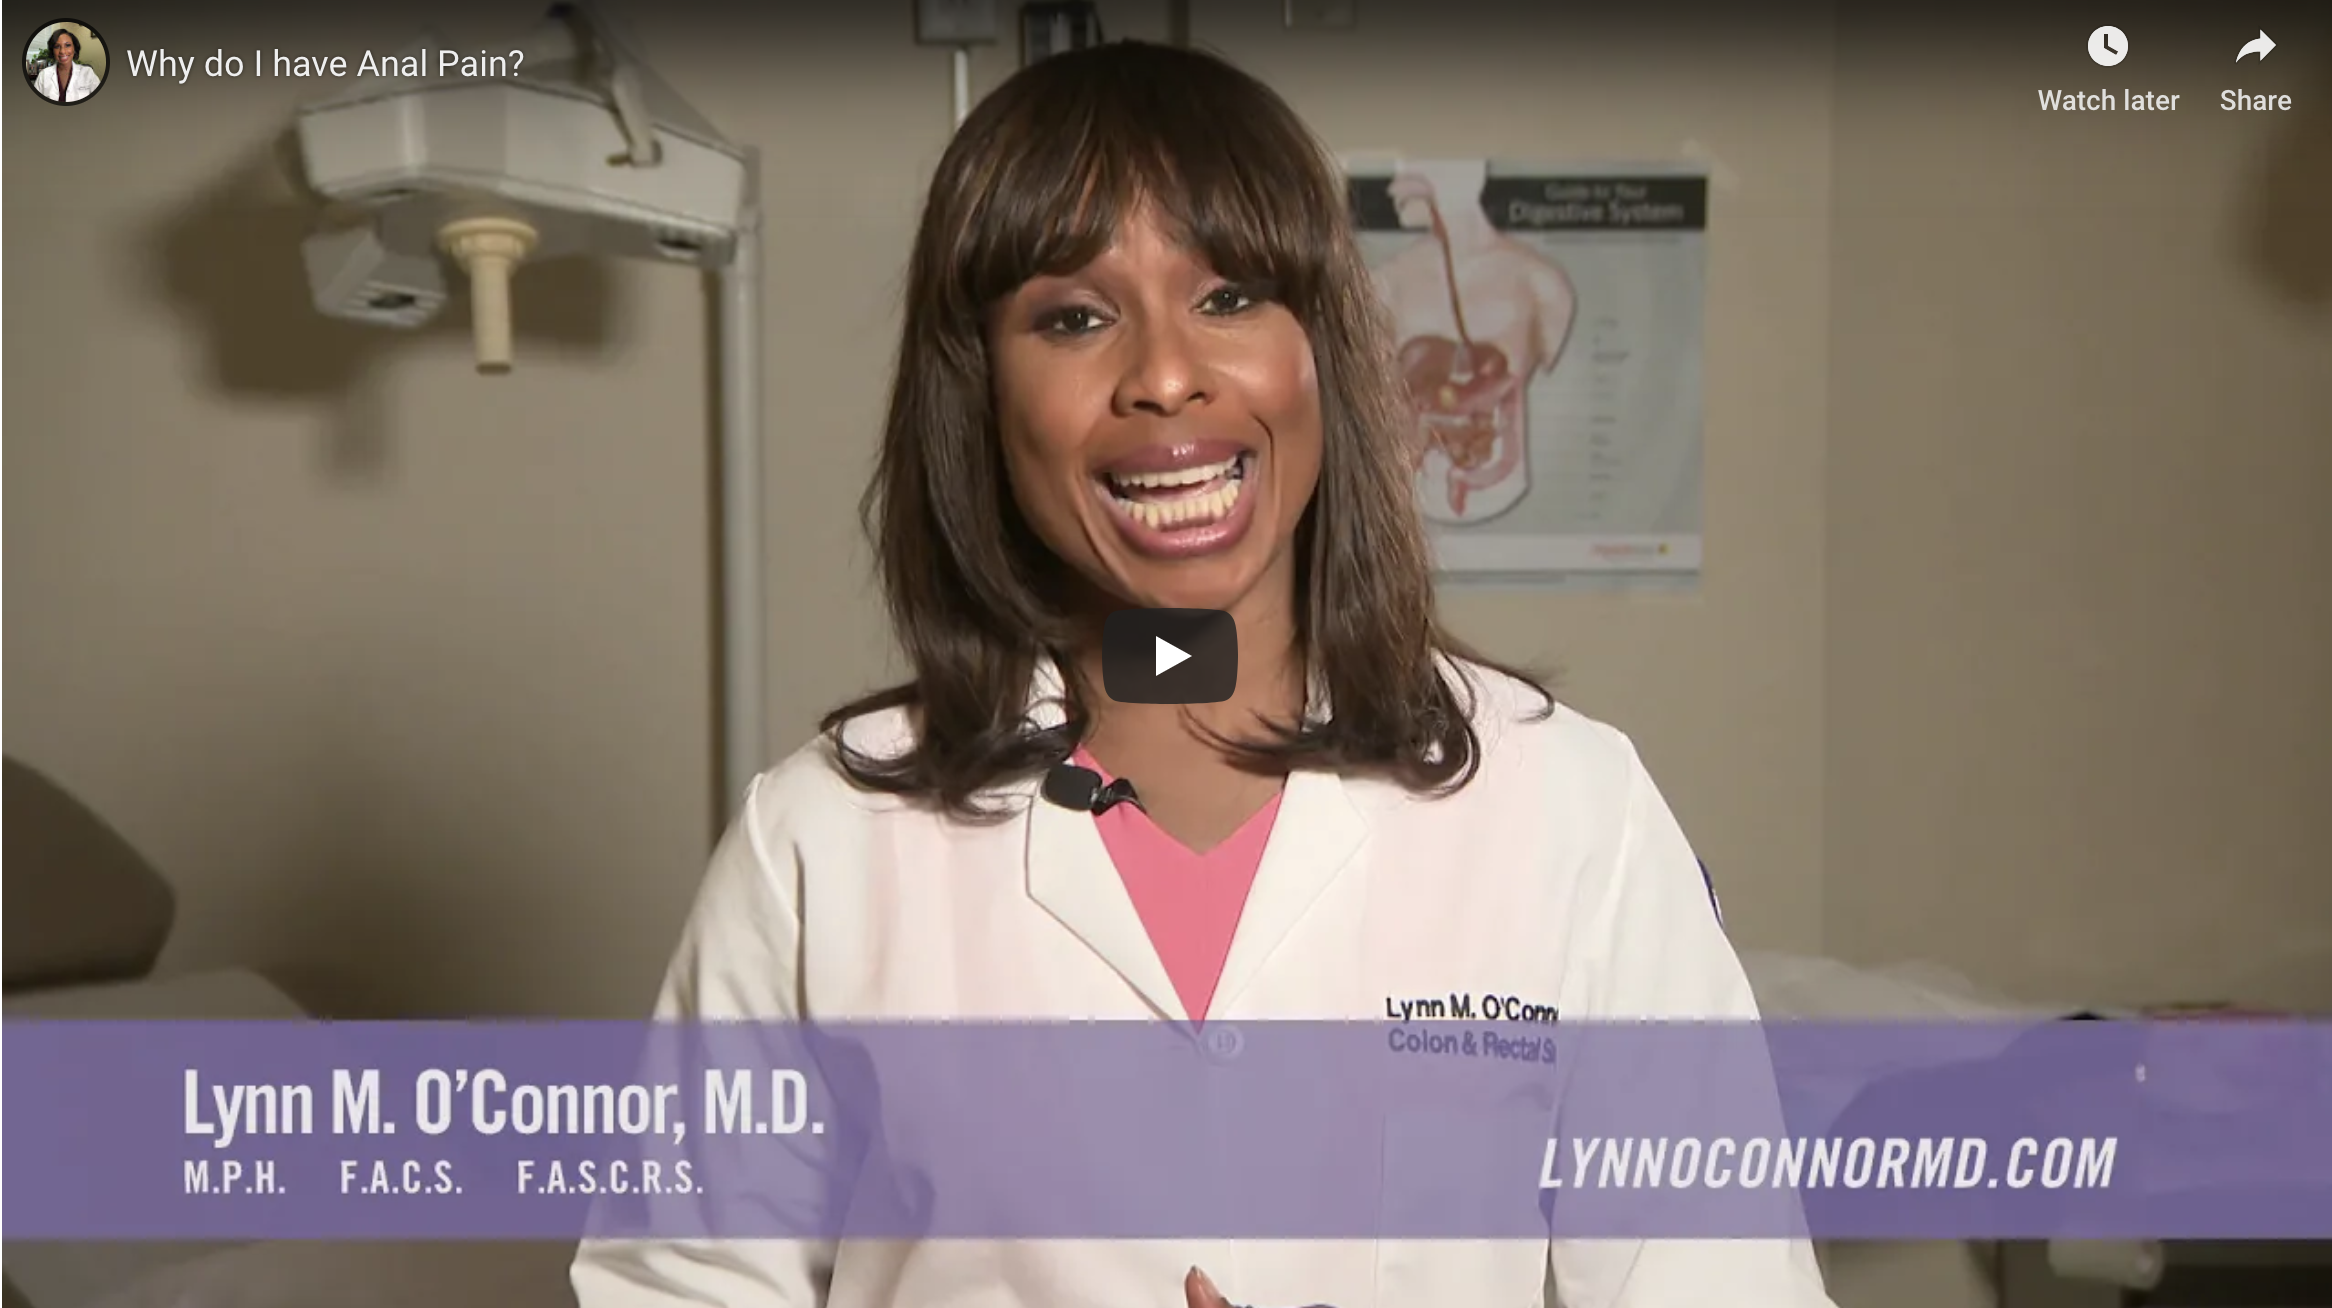 Video thumbnail of Dr. Lynn M. O'Connor.